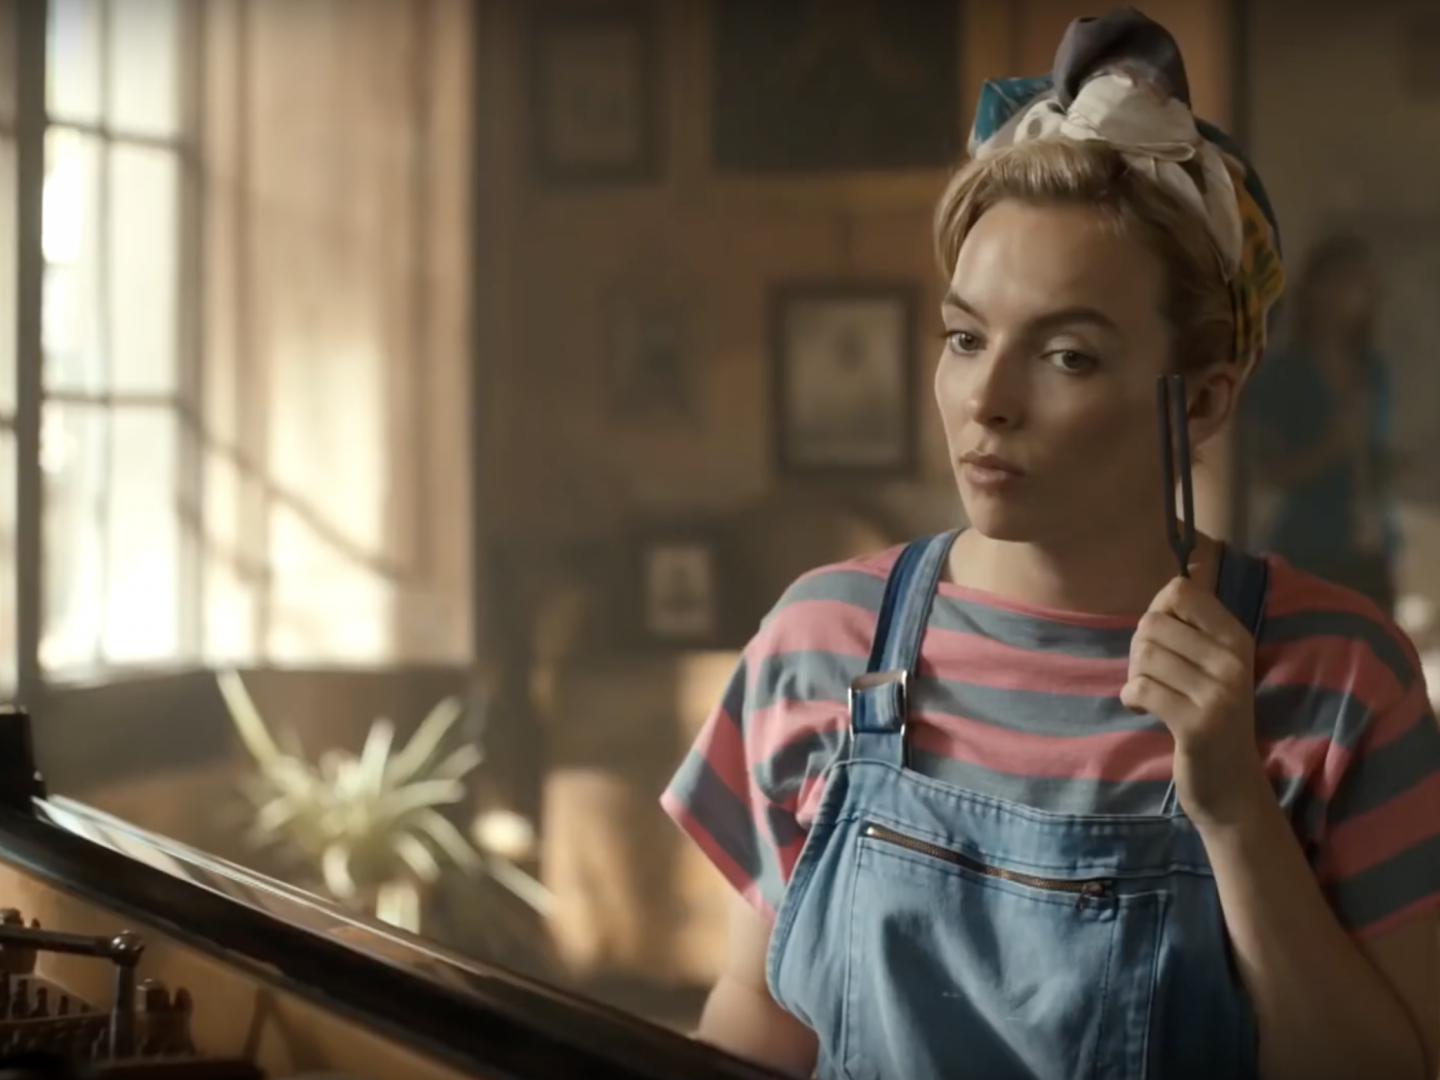 Jodie Comer as Villanelle wearing dungaree's